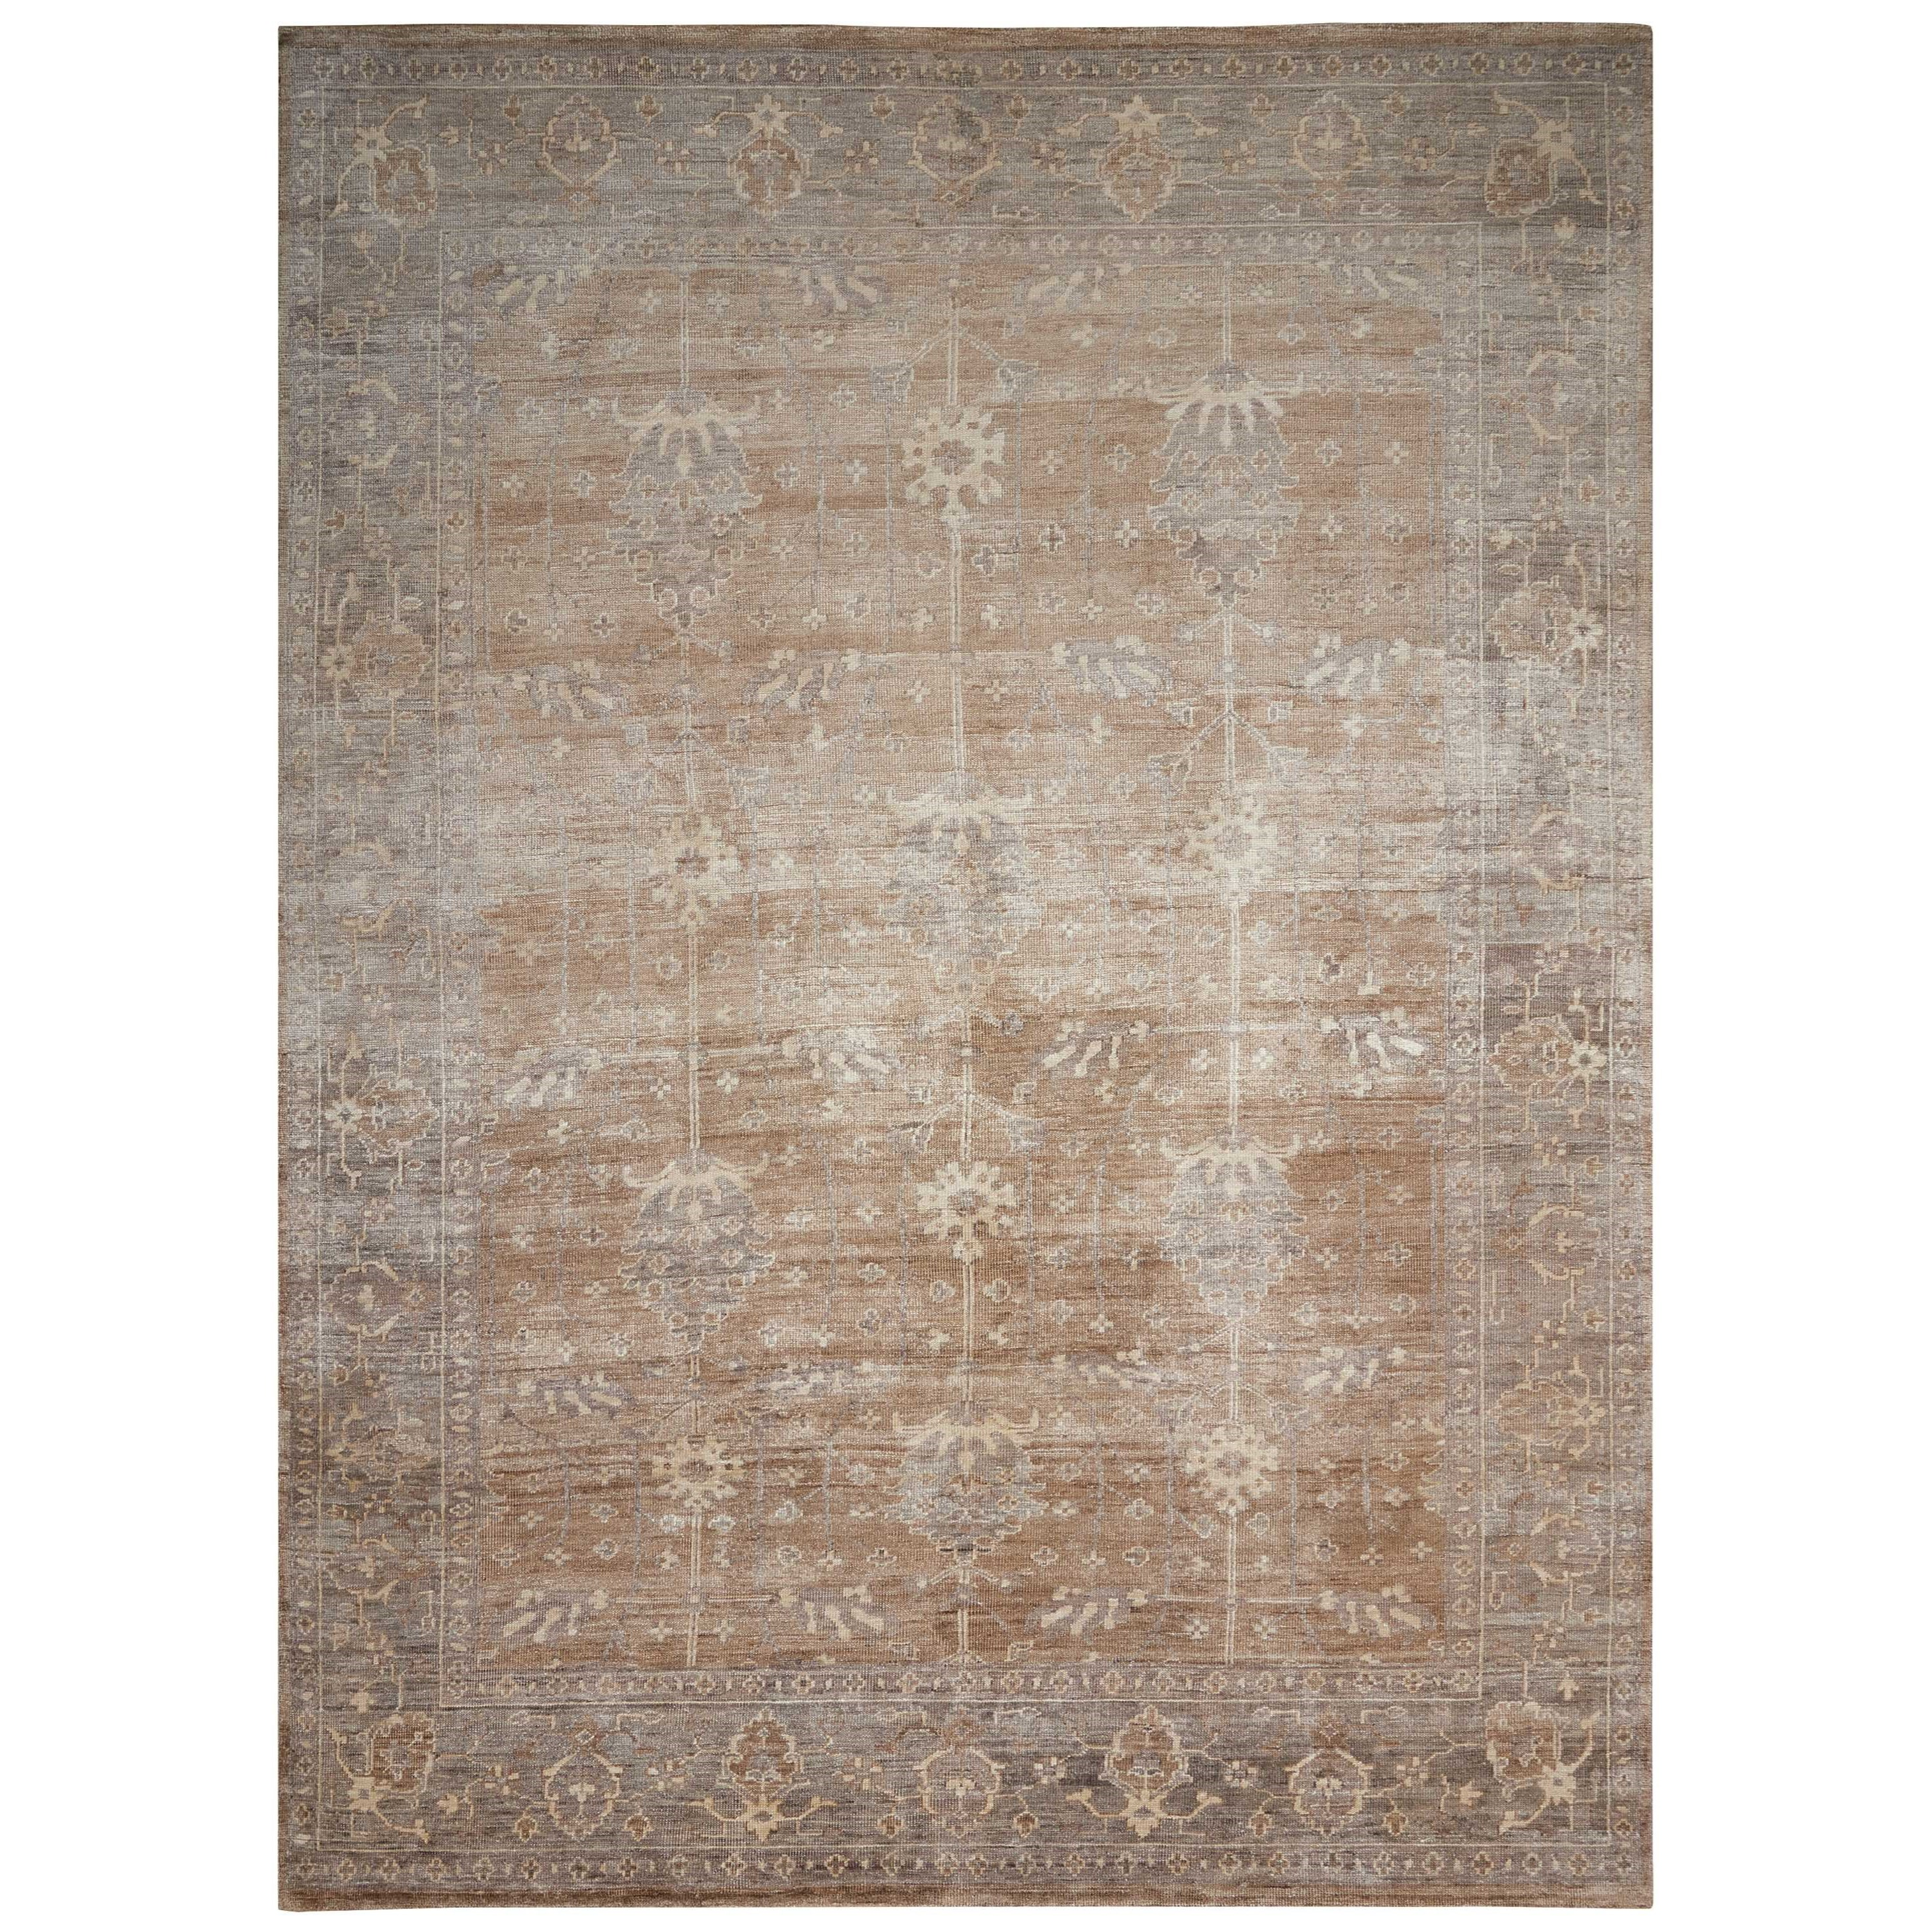 "Aldora1 5'6"" X 8' Pewter Rug by Nourison at Home Collections Furniture"